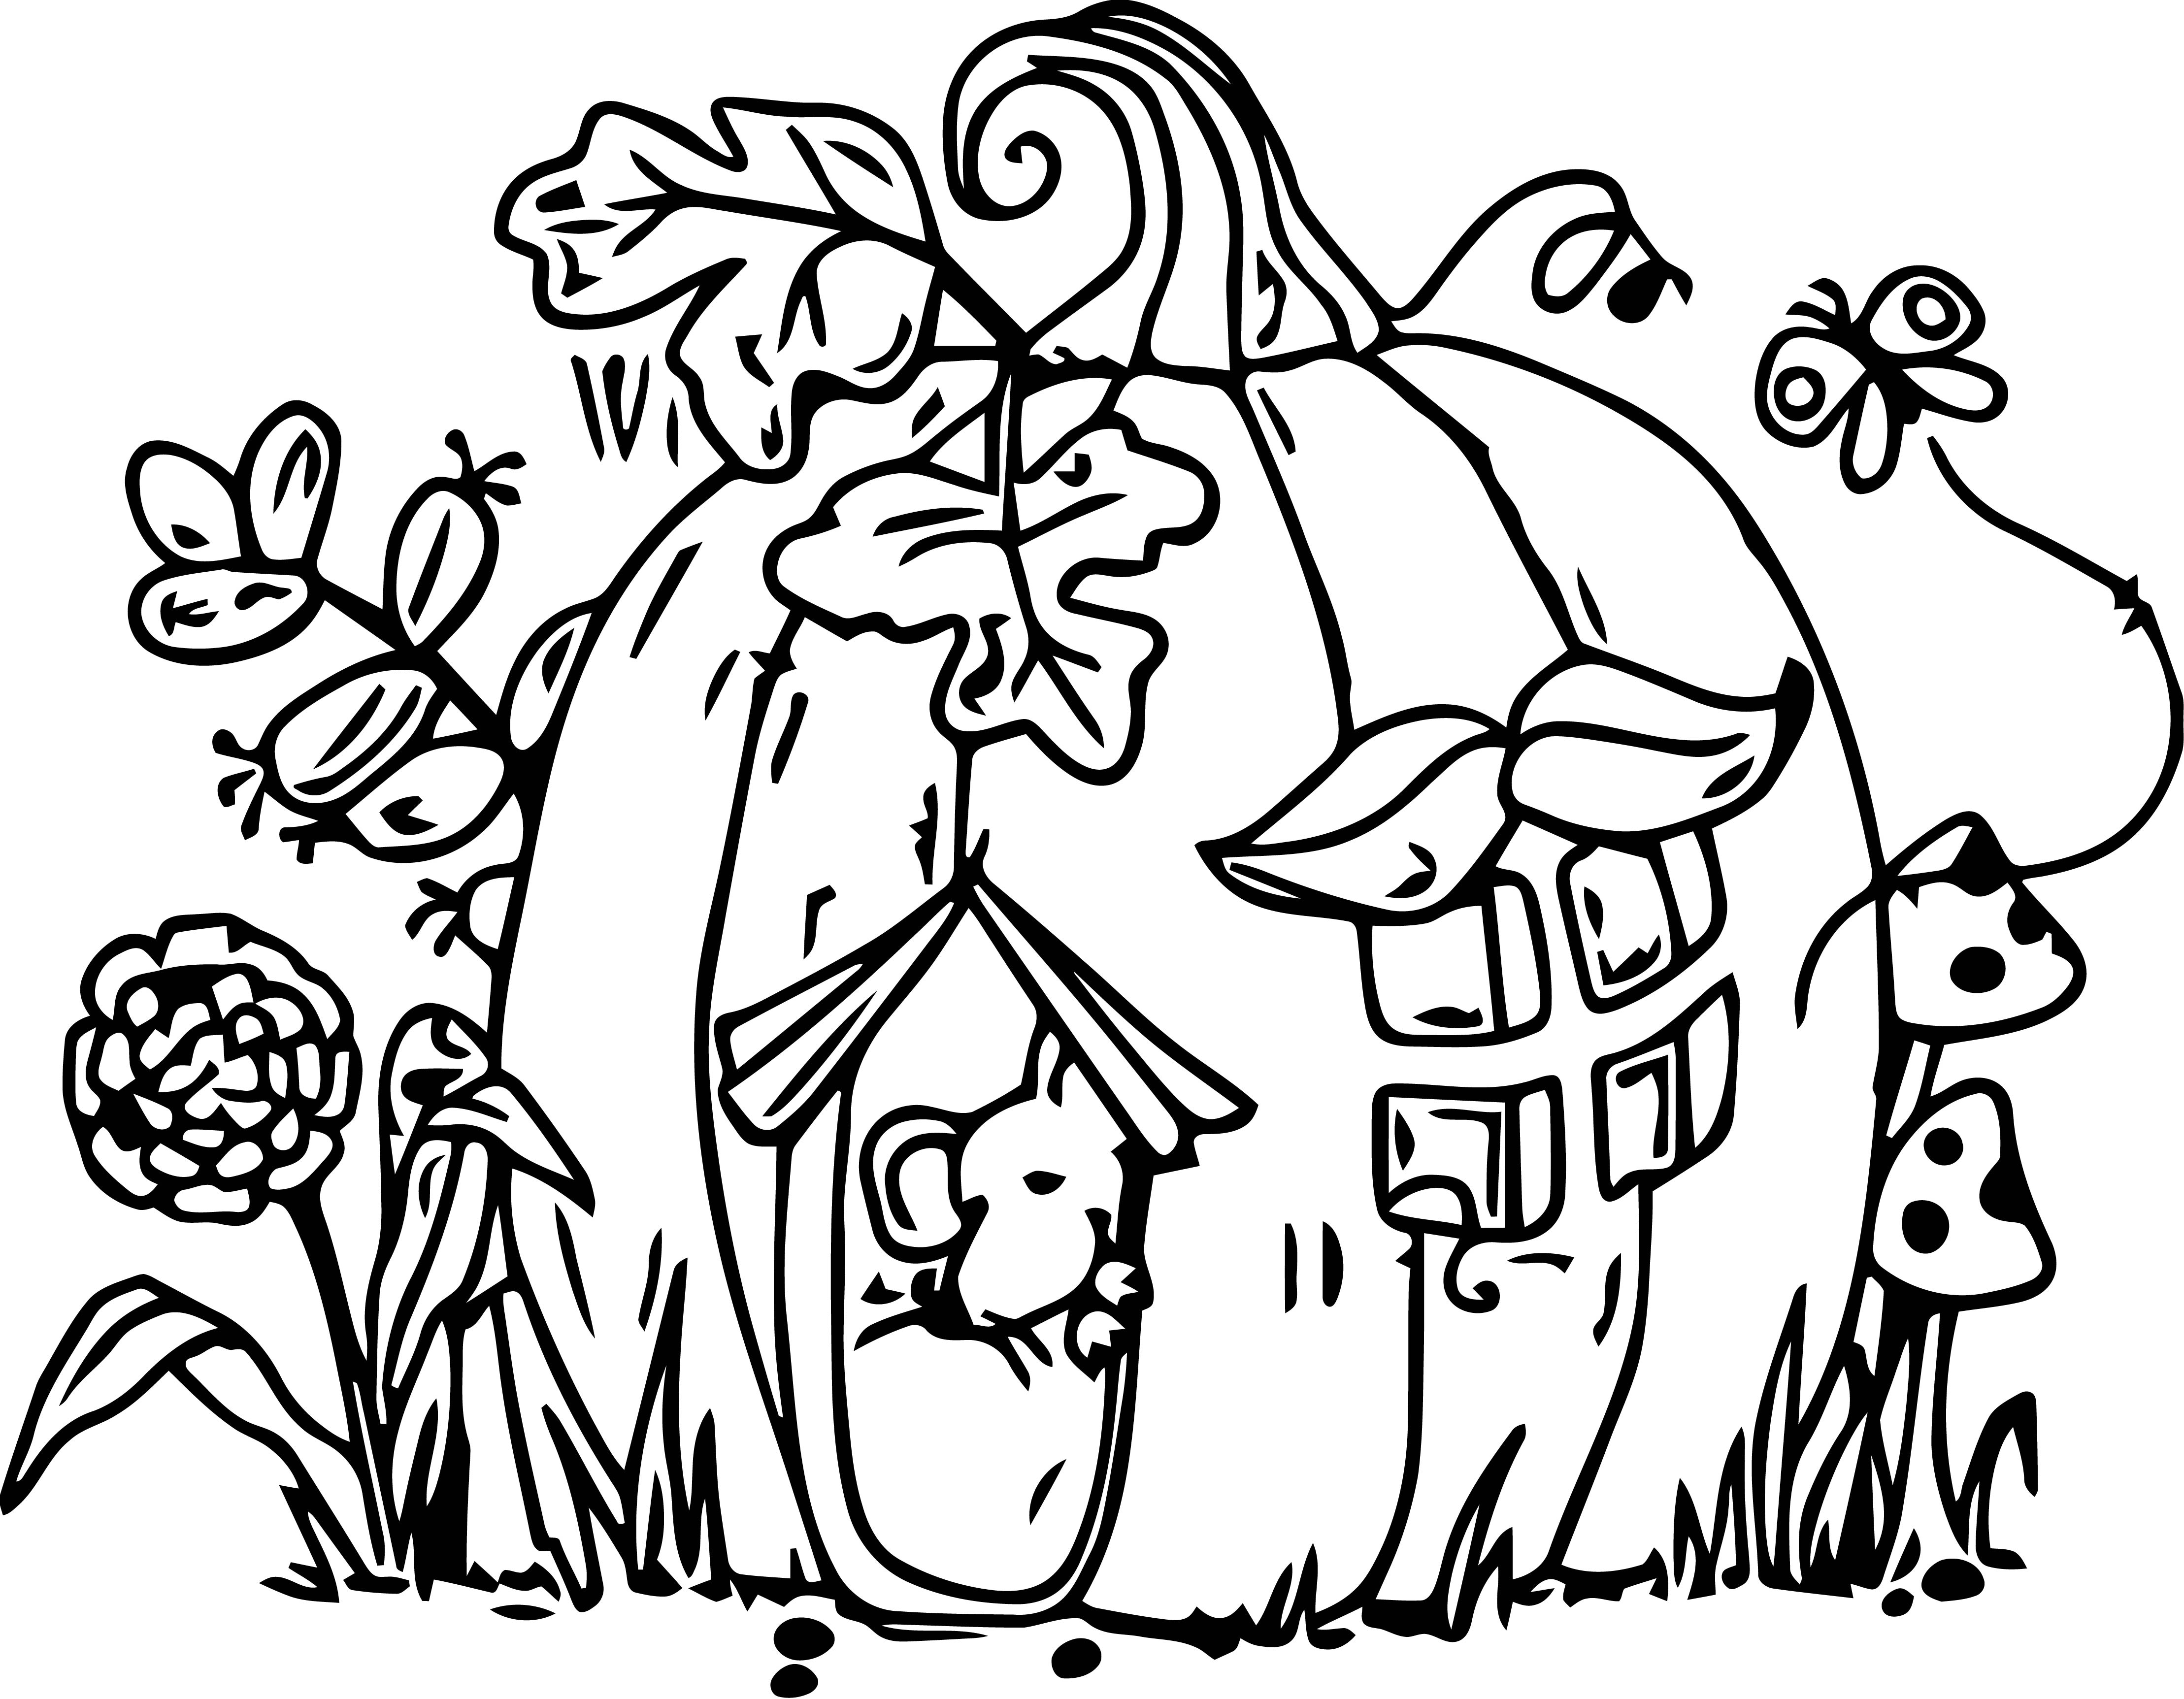 Mouse Jpeg Coloring Page 099